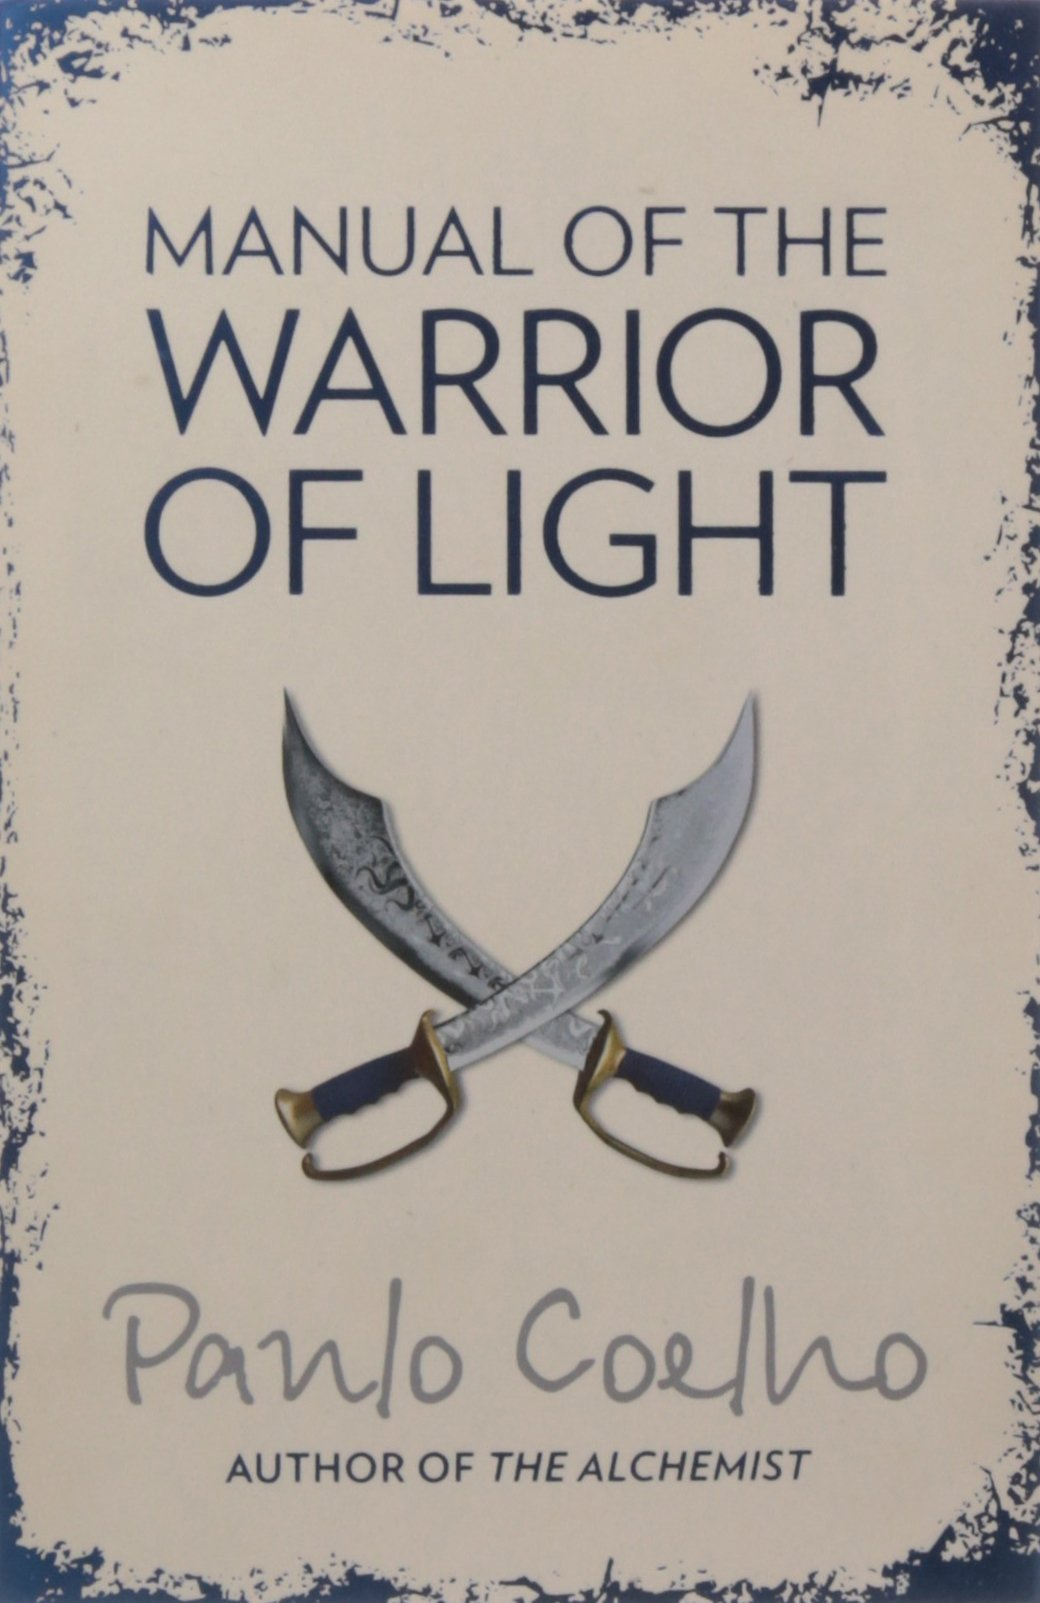 Elegant Buy Manual Of The Warrior Of Light Book Online At Low Prices In India |  Manual Of The Warrior Of Light Reviews U0026 Ratings   Amazon.in Design